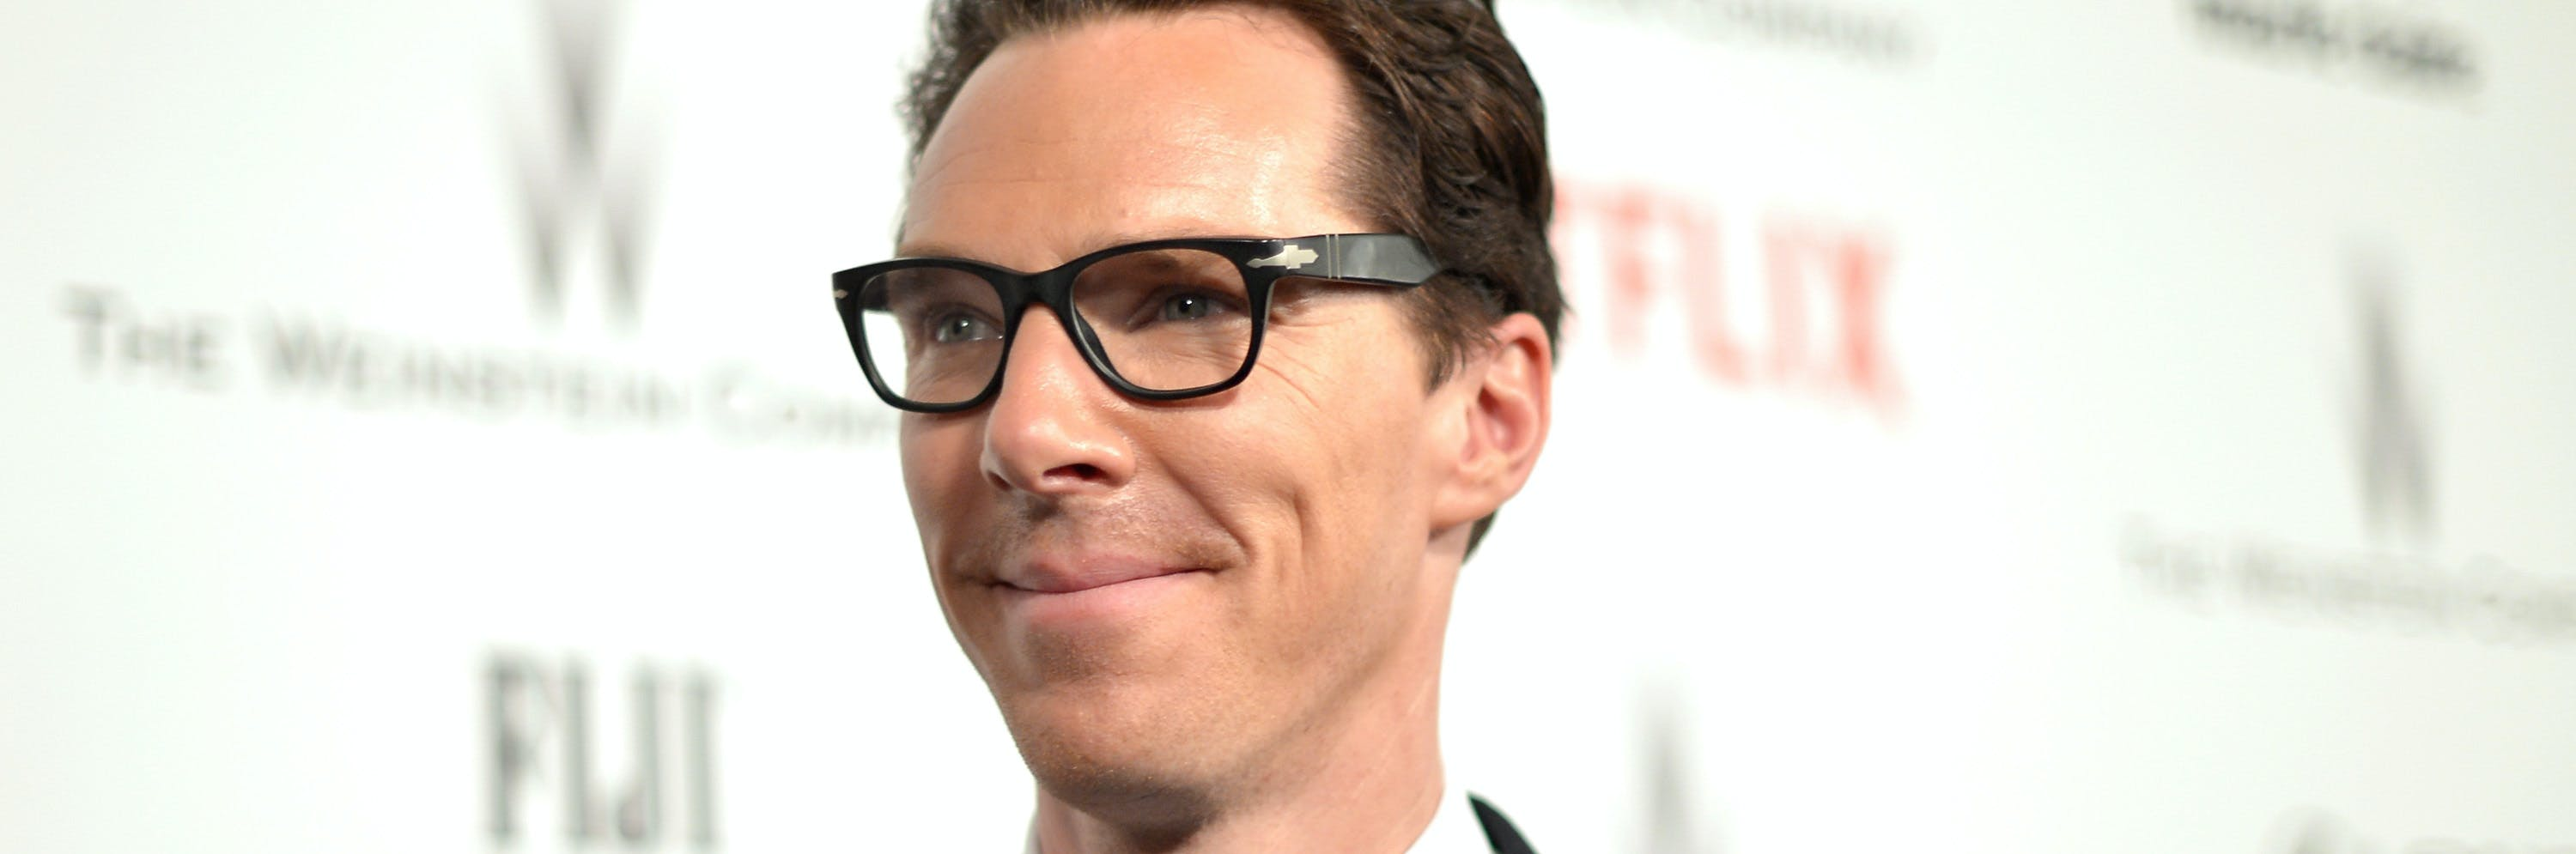 BEVERLY HILLS, CA - JANUARY 11:  Actor Benedict Cumberbatch attends The Weinstein Company & Netflix's 2015 Golden Globes After Party presented by FIJI Water, Lexus, Laura Mercier and Marie Claire at The Beverly Hilton Hotel on January 11, 2015 in Beverly Hills, California.  (Photo by Charley Gallay/Getty Images for TWC)